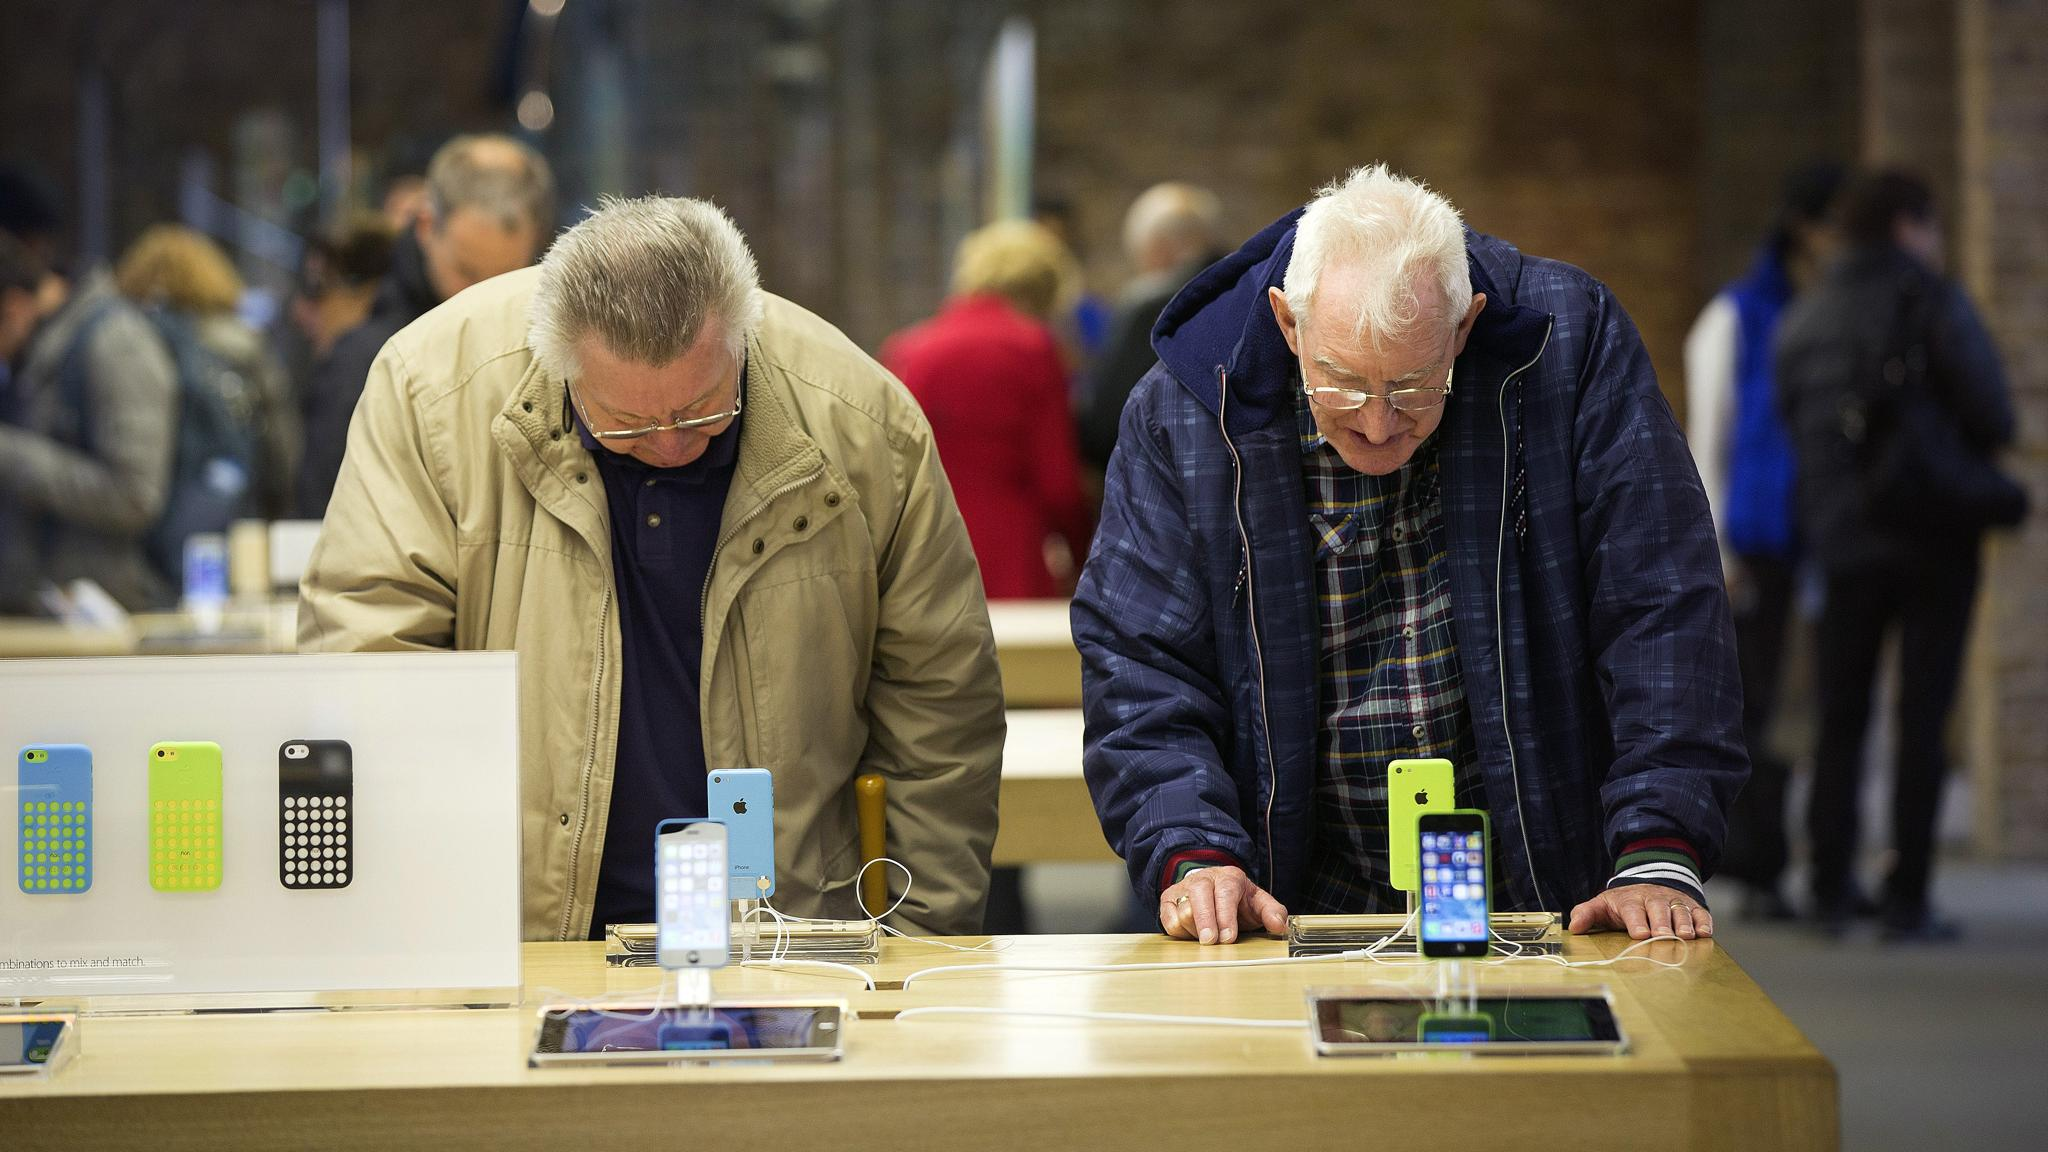 The Silver Economy: Tech sector taps surge of connected boomers